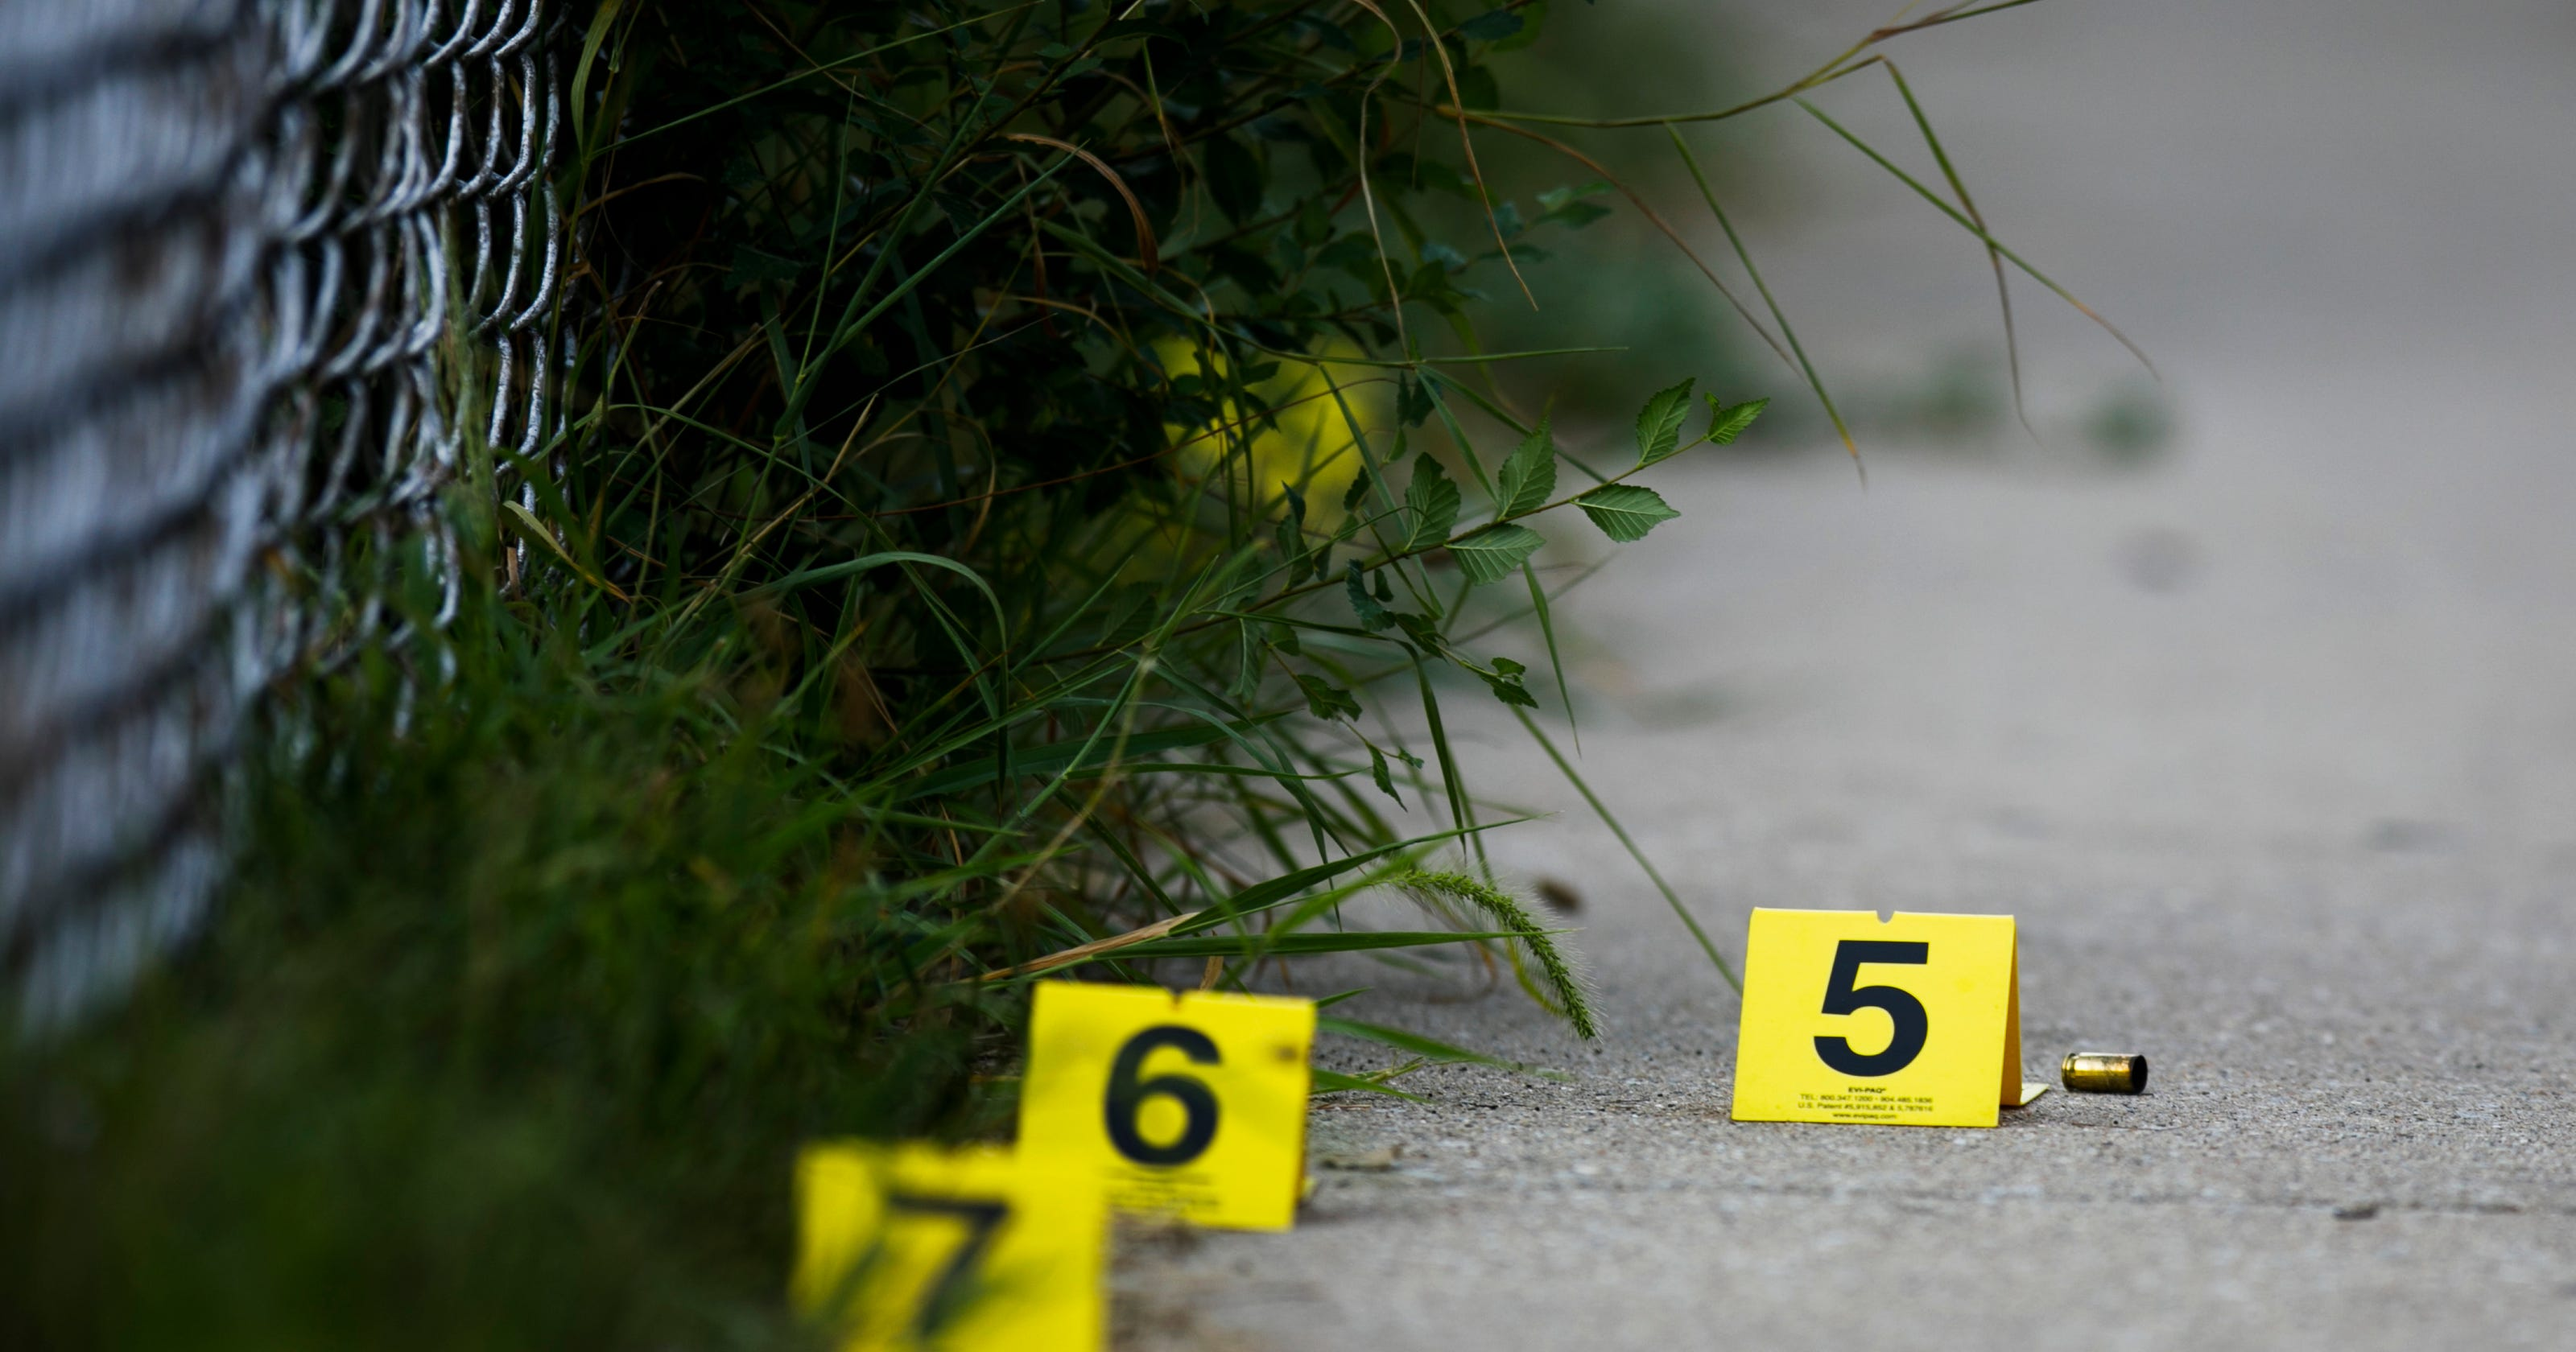 At Least Nobody Was Killed It Was No >> Chicago Weekend Shootings Leave 72 Shot 13 Dead Over Grim Three Days